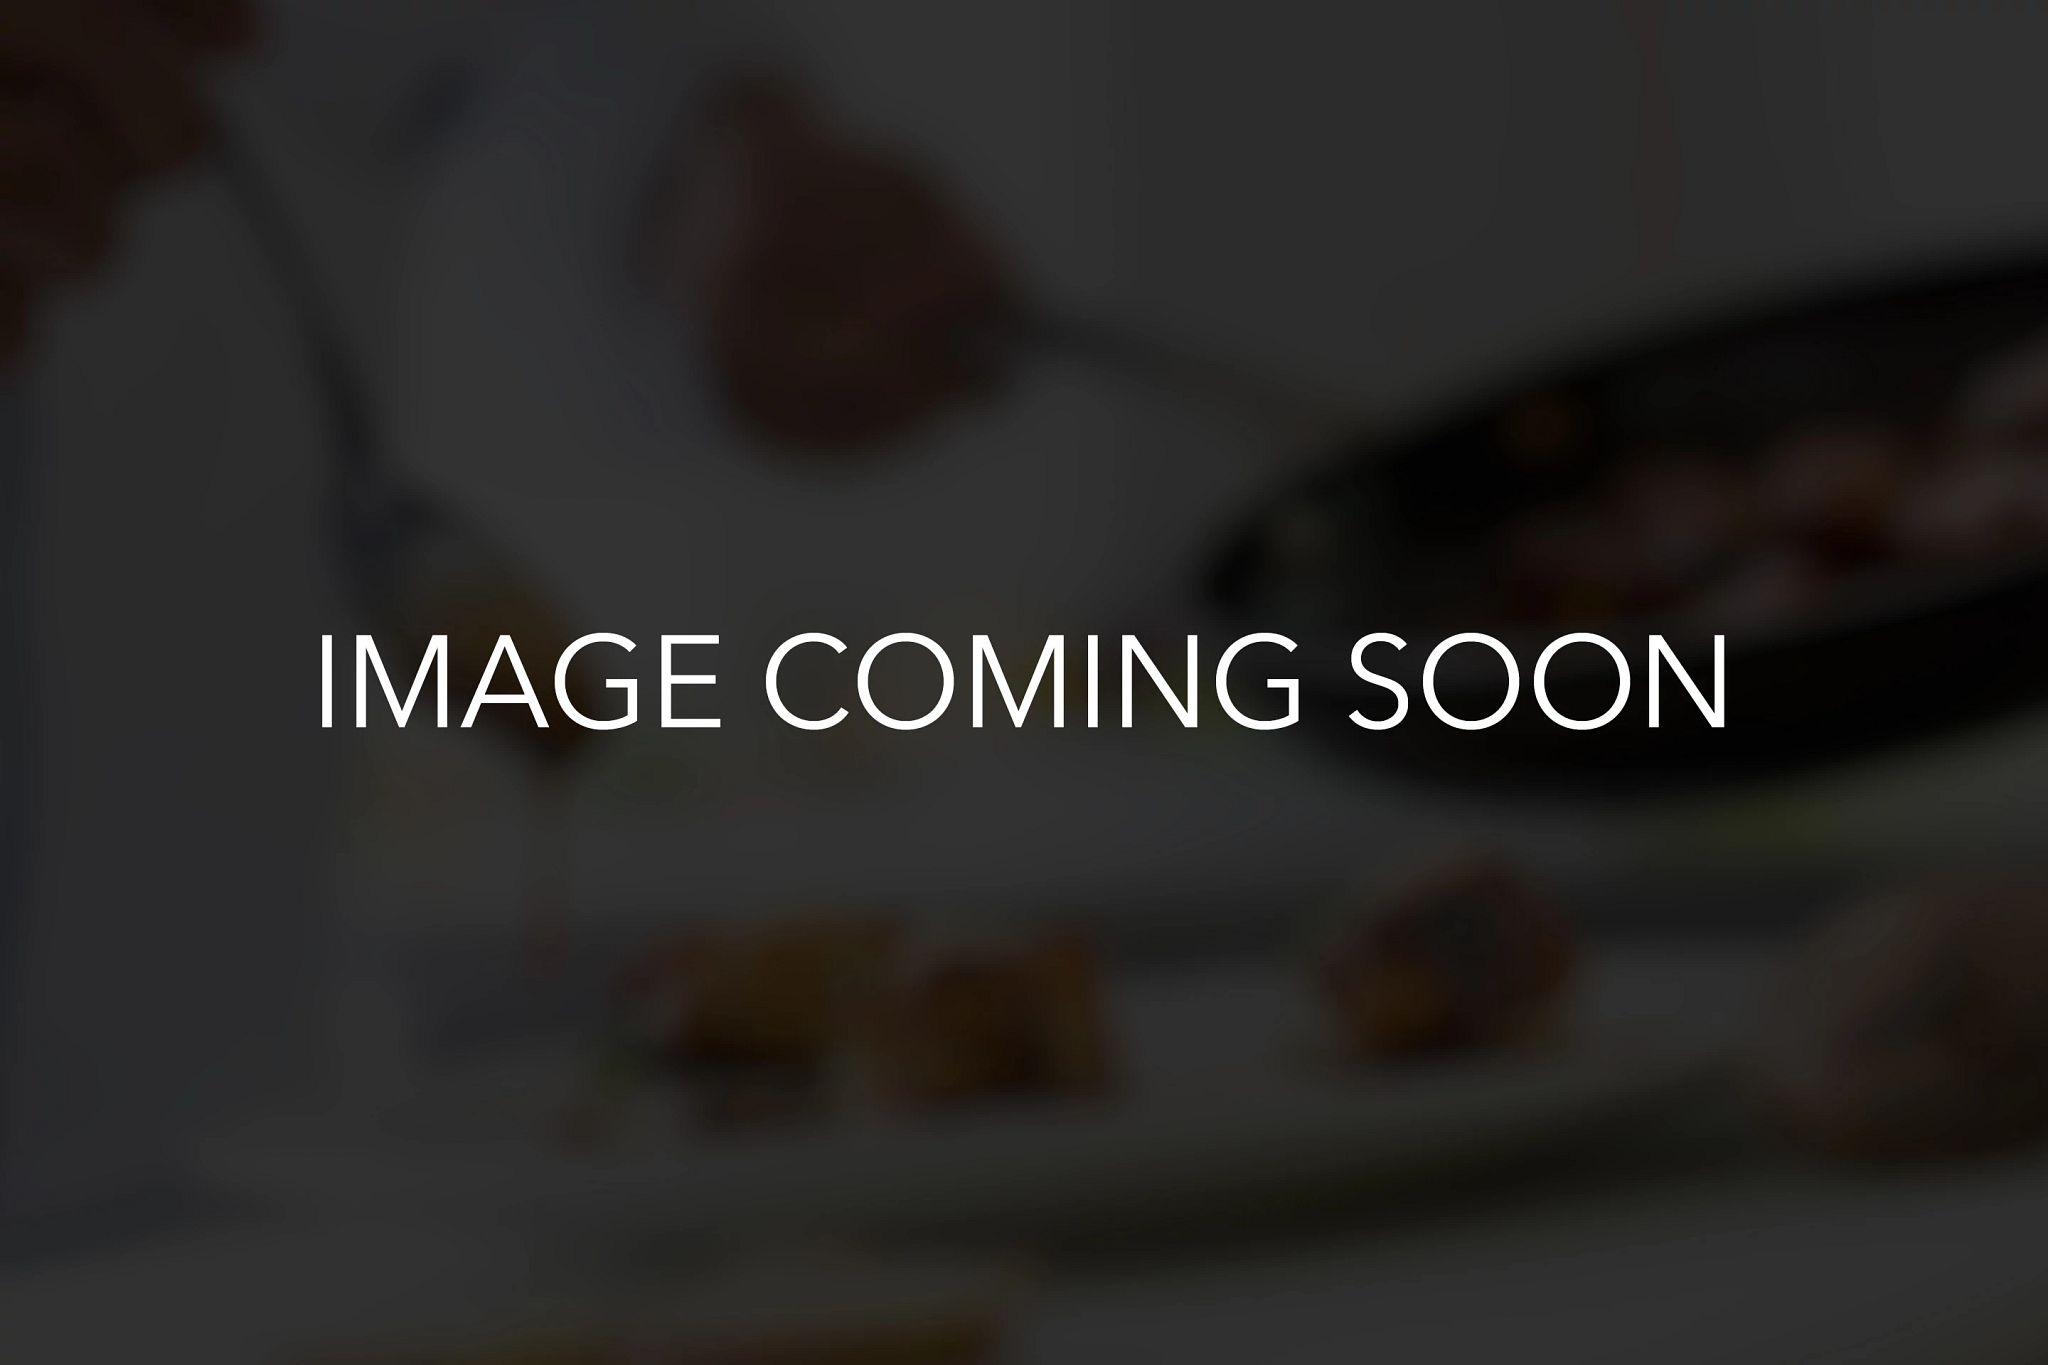 Coming soon image placeholder for restaurant